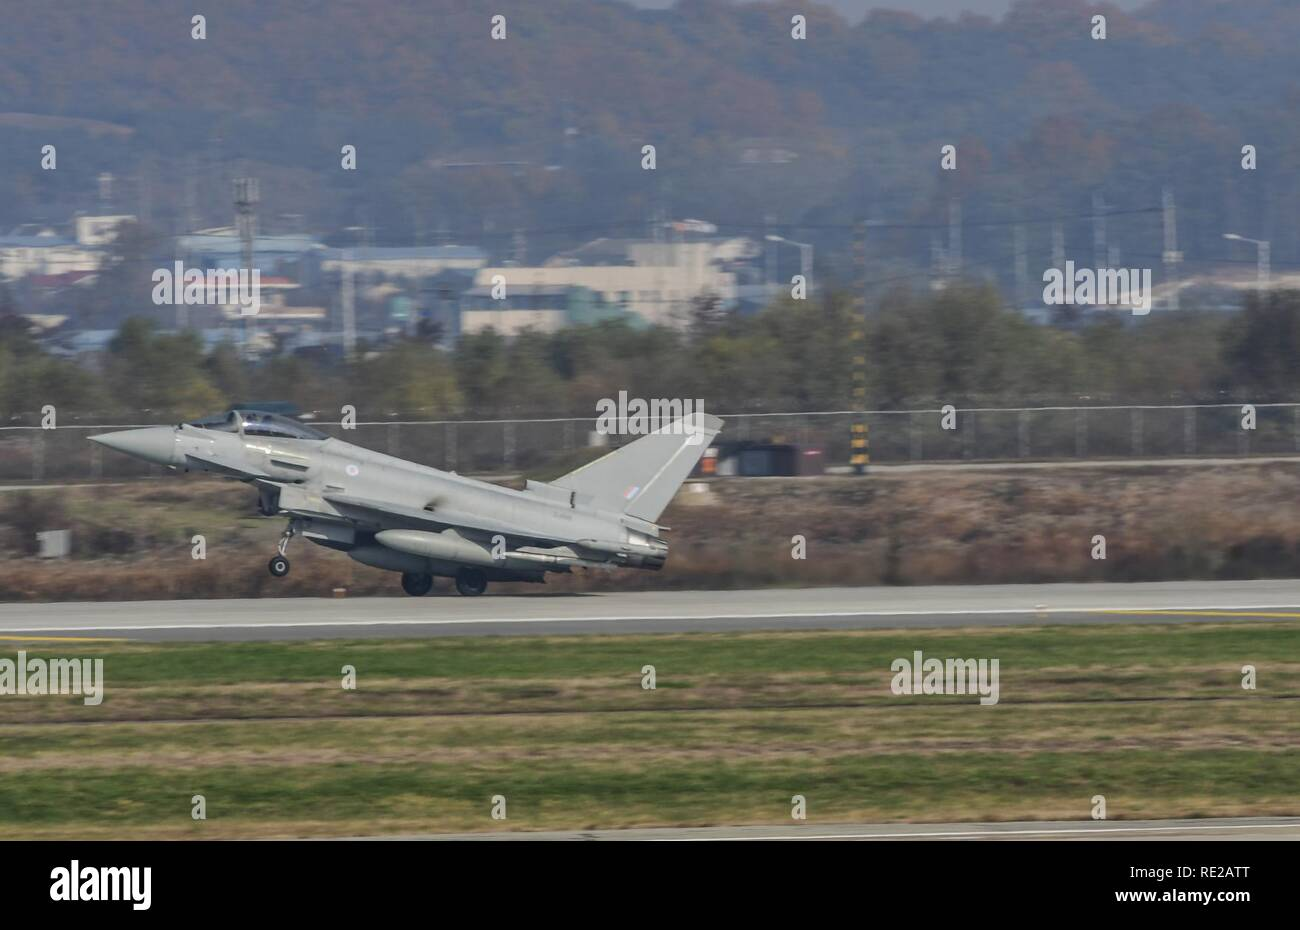 A Royal Air Force Eurofighter Typhoon FRG4, U.S. Air Force F-16 Fighting Falcon, and a Republic of Korea air force F-16 and F-15K Slam Eagle fly in formation during Invincible Shield on Osan Air Base, Republic of Korea, Nov. 8, 2016. The intent of Invincible Shield is to bolster the interoperability between the RoK, the U.S. and United Kingdom while improving combat capability in the Pacific region. - Stock Image